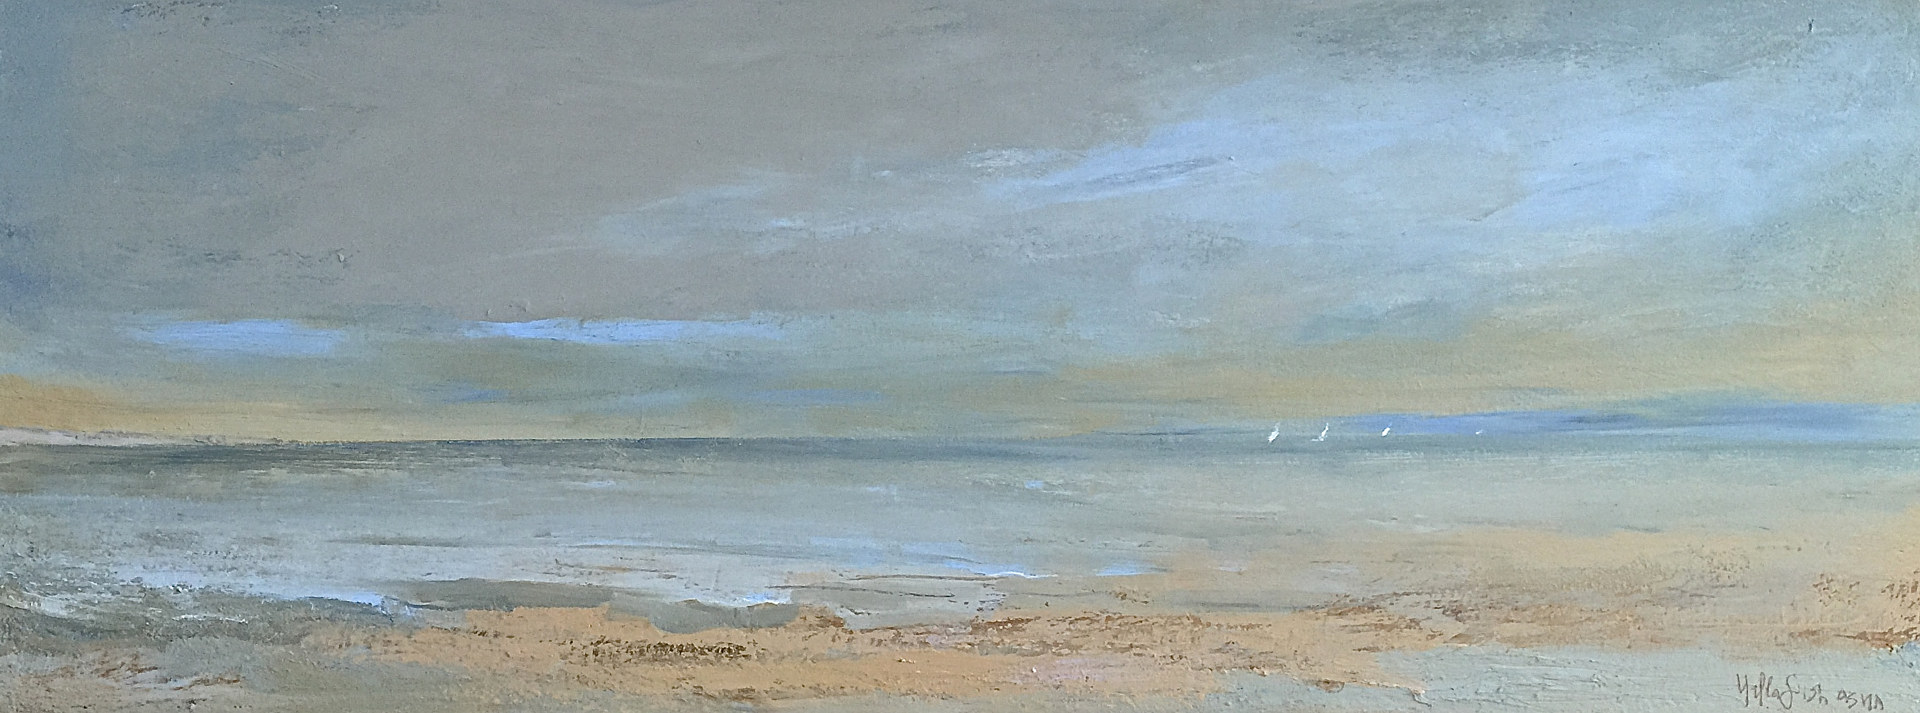 SOLD/Offshore @ Thomas Henry Gallery, Nantucket by Nella Lush